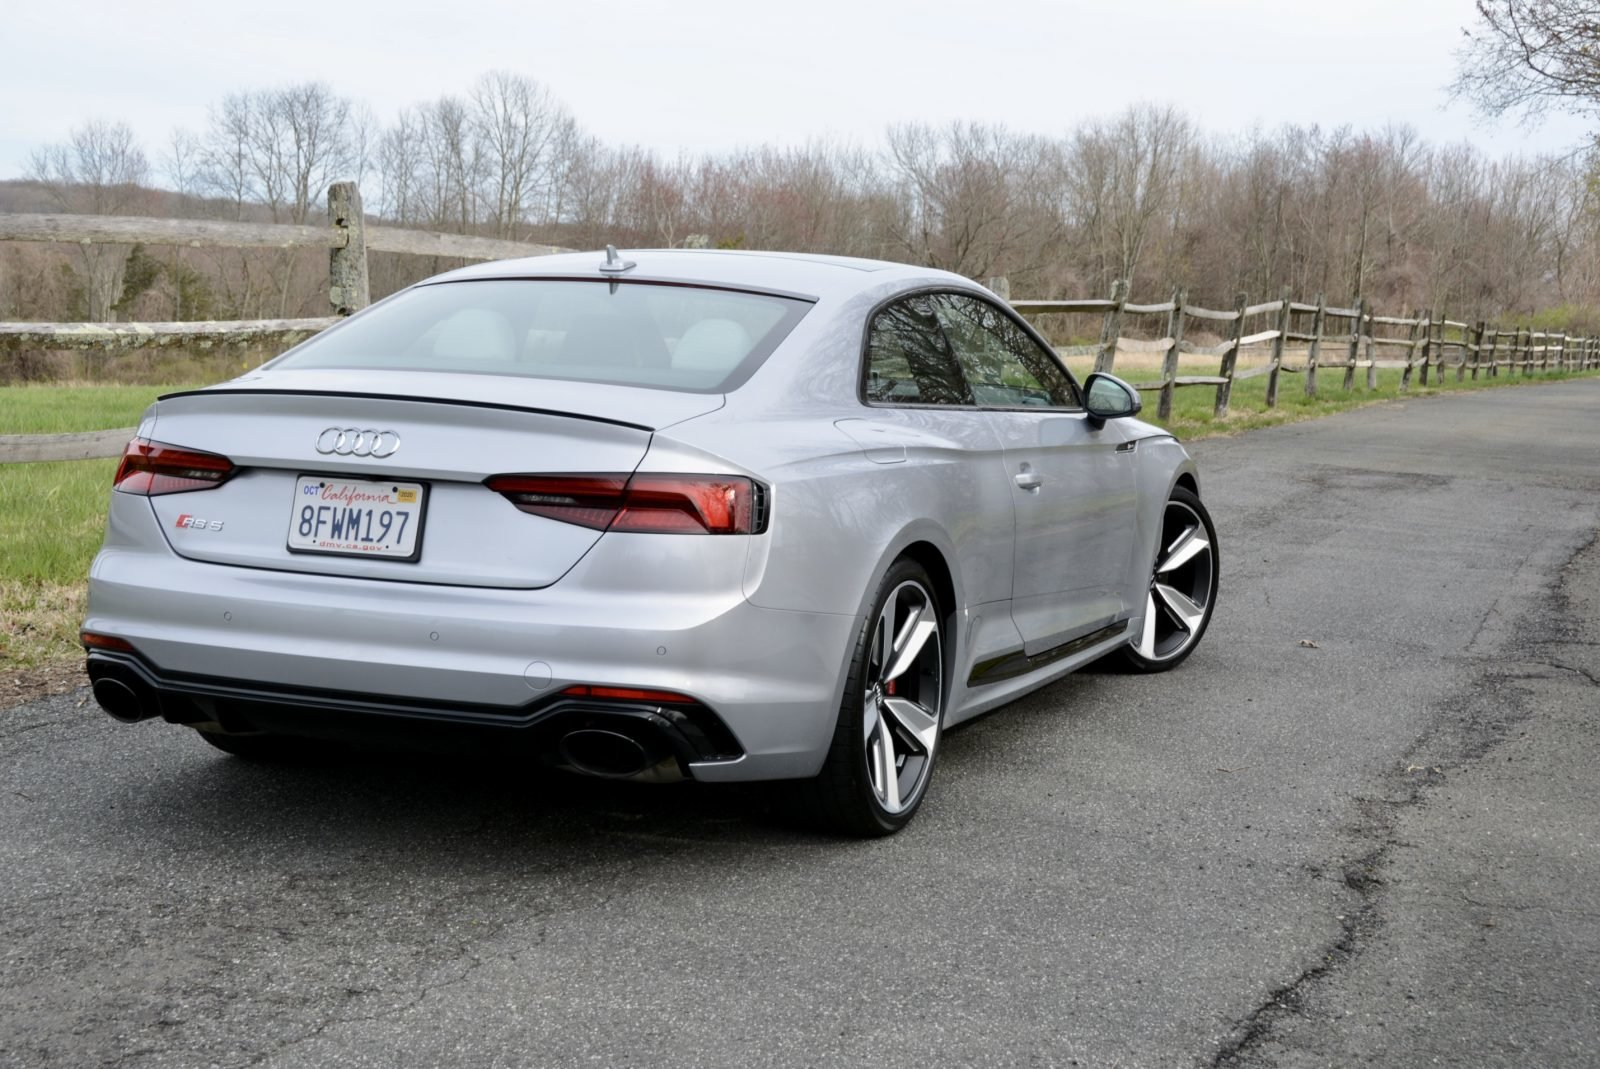 2018 Audi RS5 Coupe AWD Fast 444-HP 8 speed 1.4k miles $68.9 For Sale (picture 2 of 6)